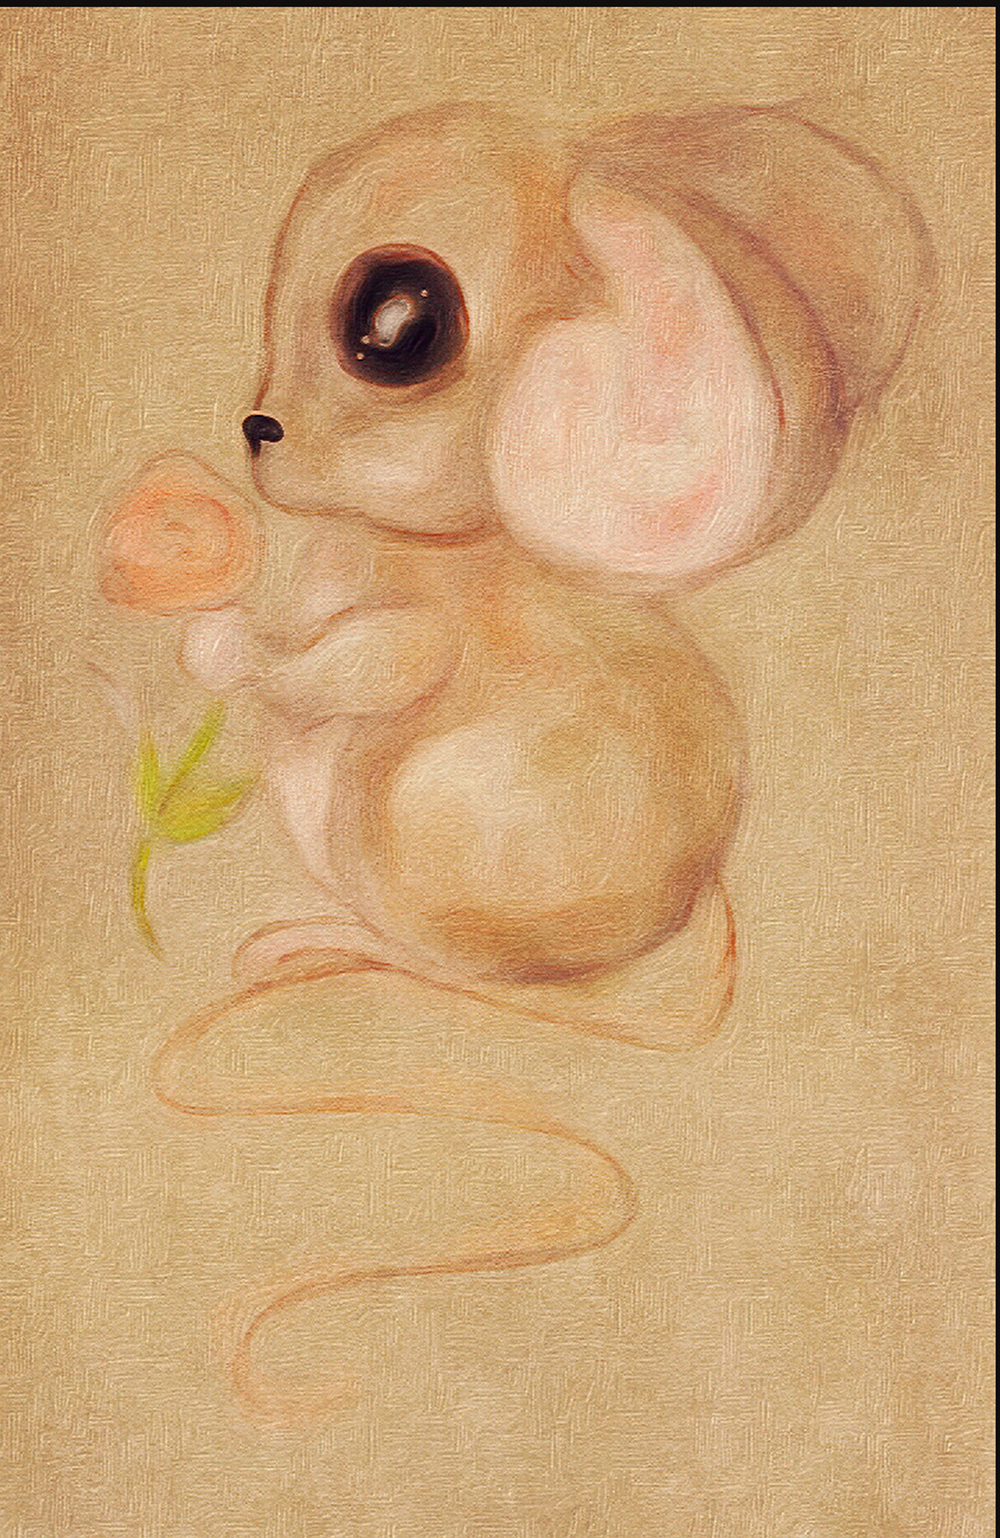 Mouse and Rose illustration